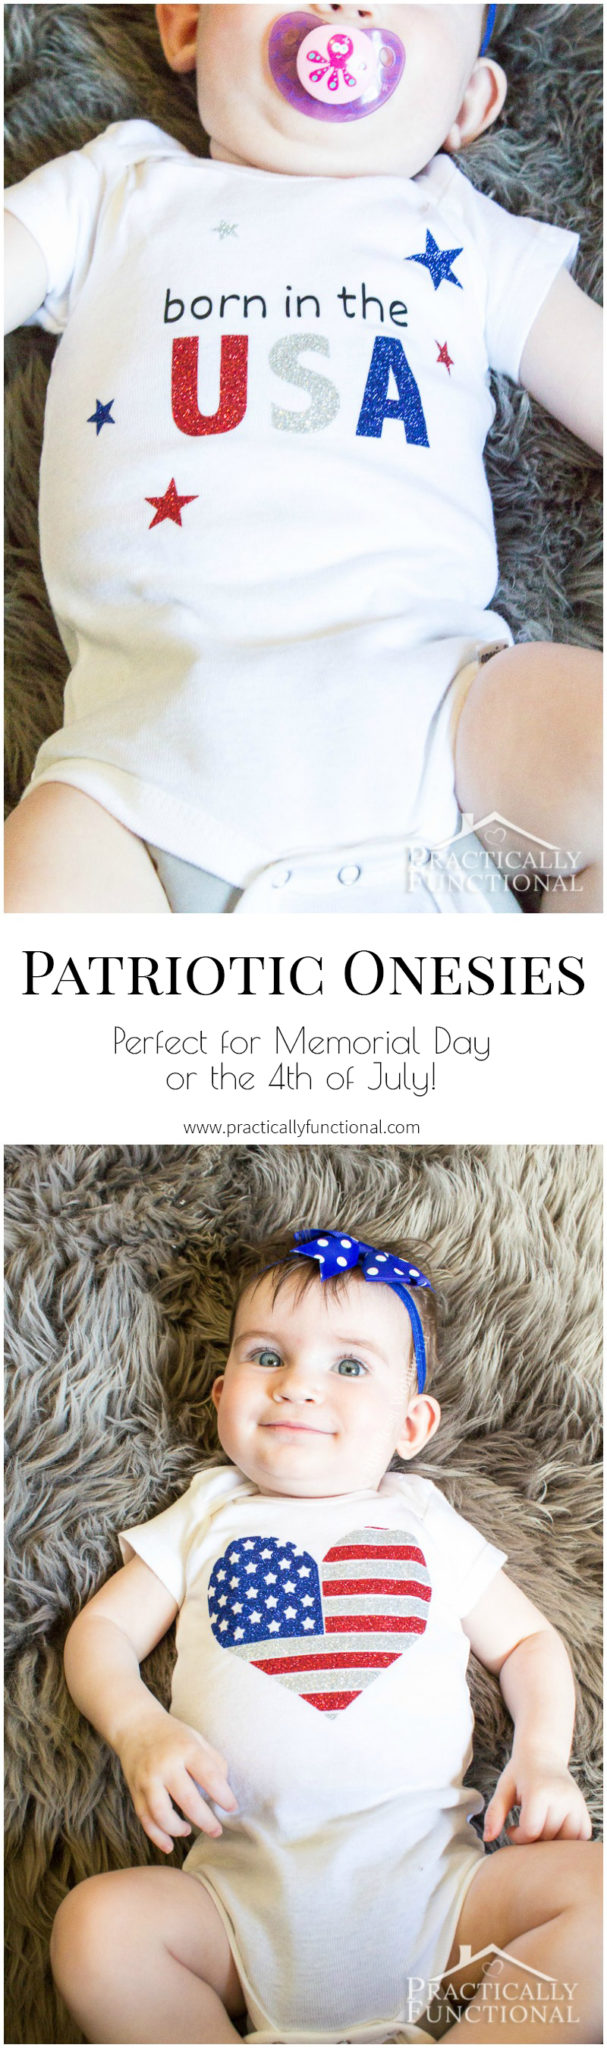 These patriotic onesies are too cute, and perfect for celebrating Memorial Day or the 4th of July! #4thofjuly #patrioticcrafts